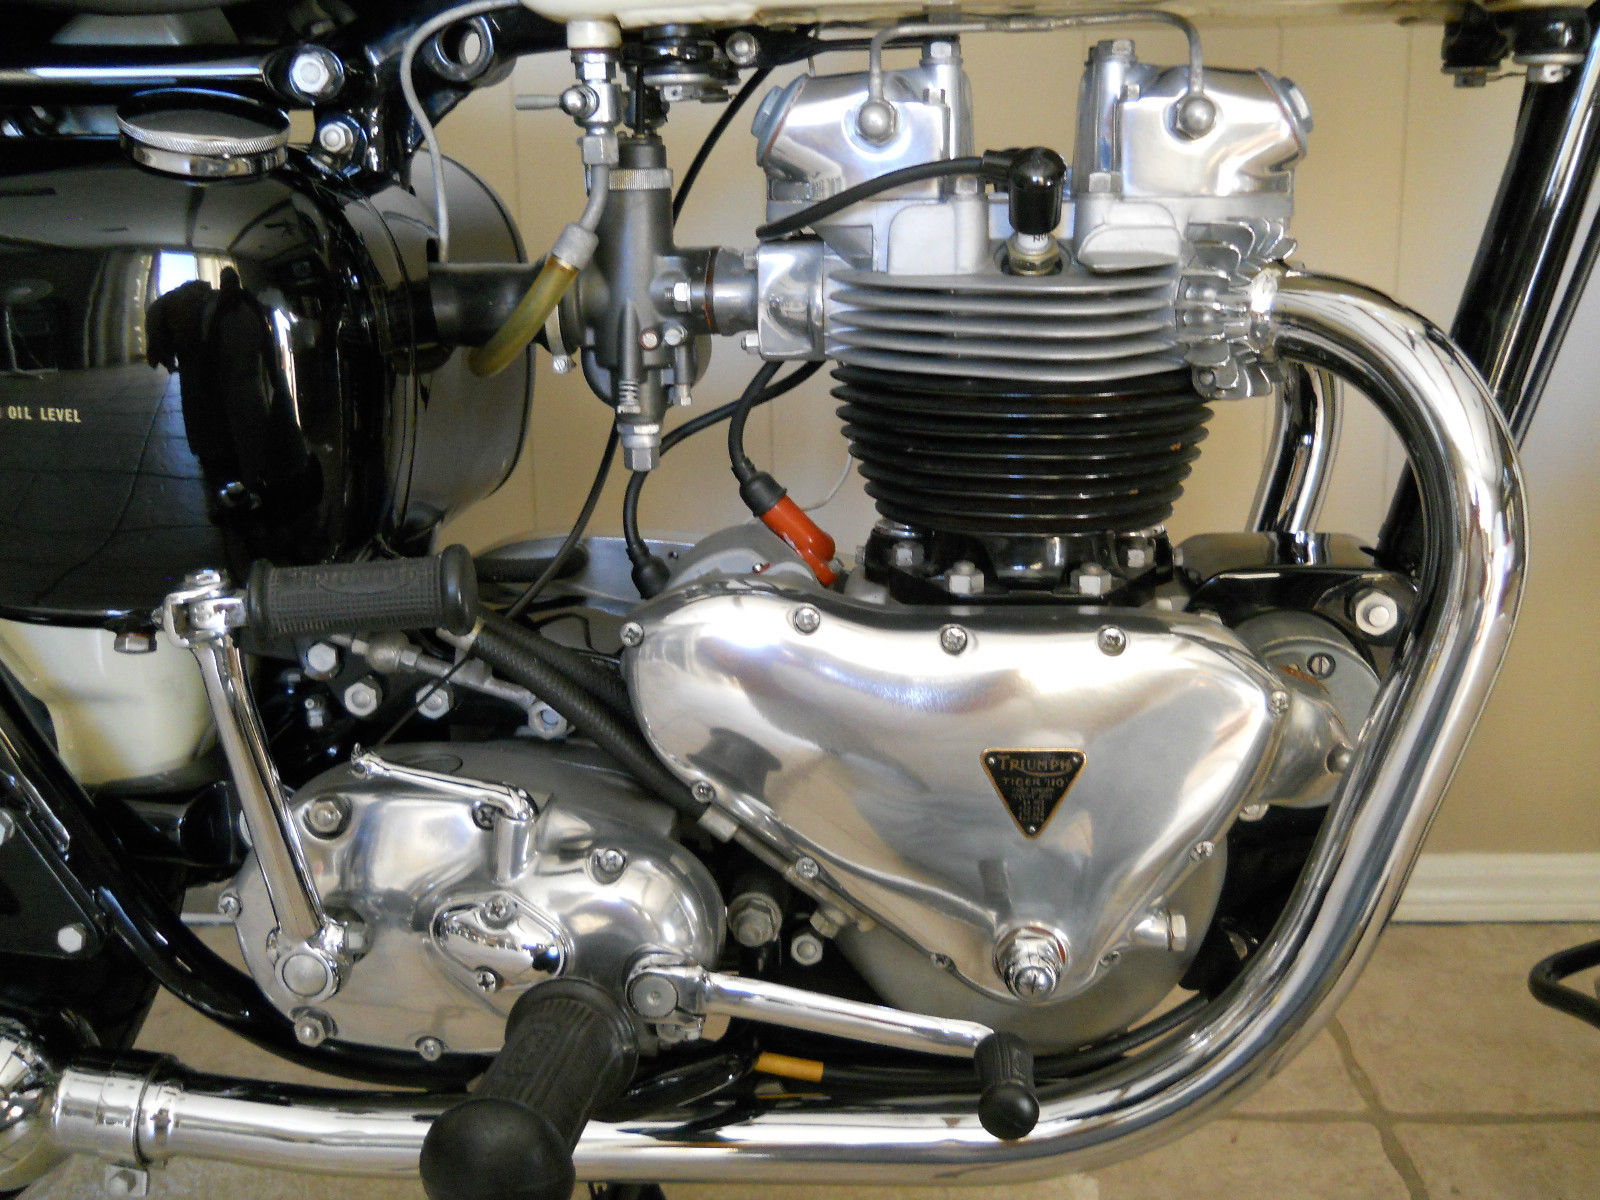 Triumph Tiger T110 - 1958 - Motor Detail, Timing Case Cover, Transmission, Kick Start and Gear Lever.